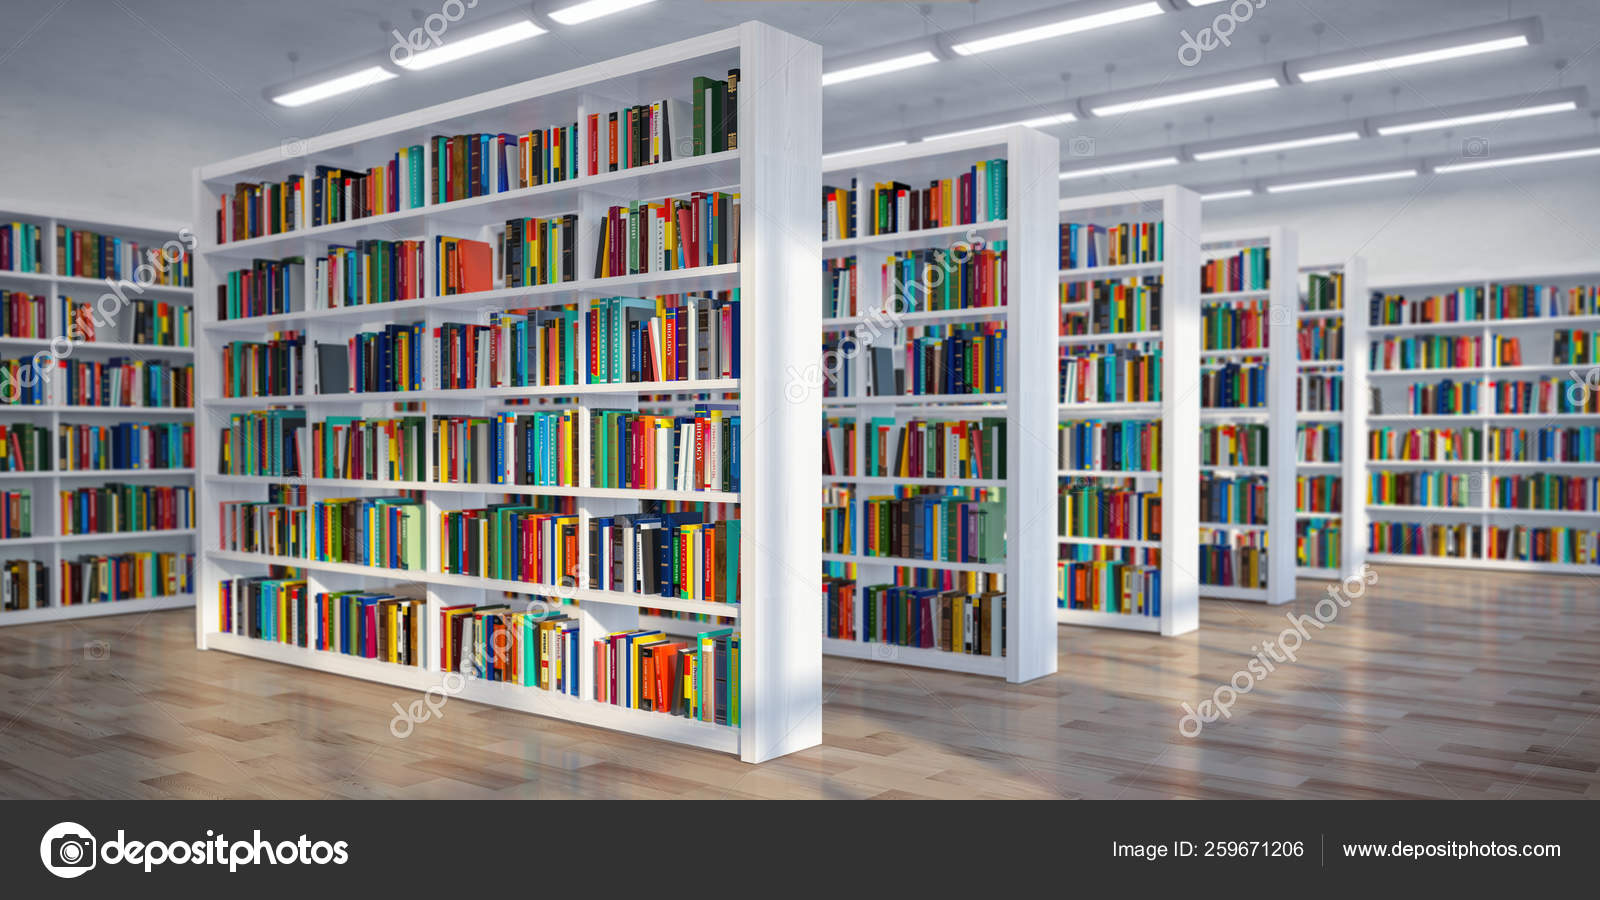 Astounding Library Background From White Bookshelves With Books And Download Free Architecture Designs Rallybritishbridgeorg